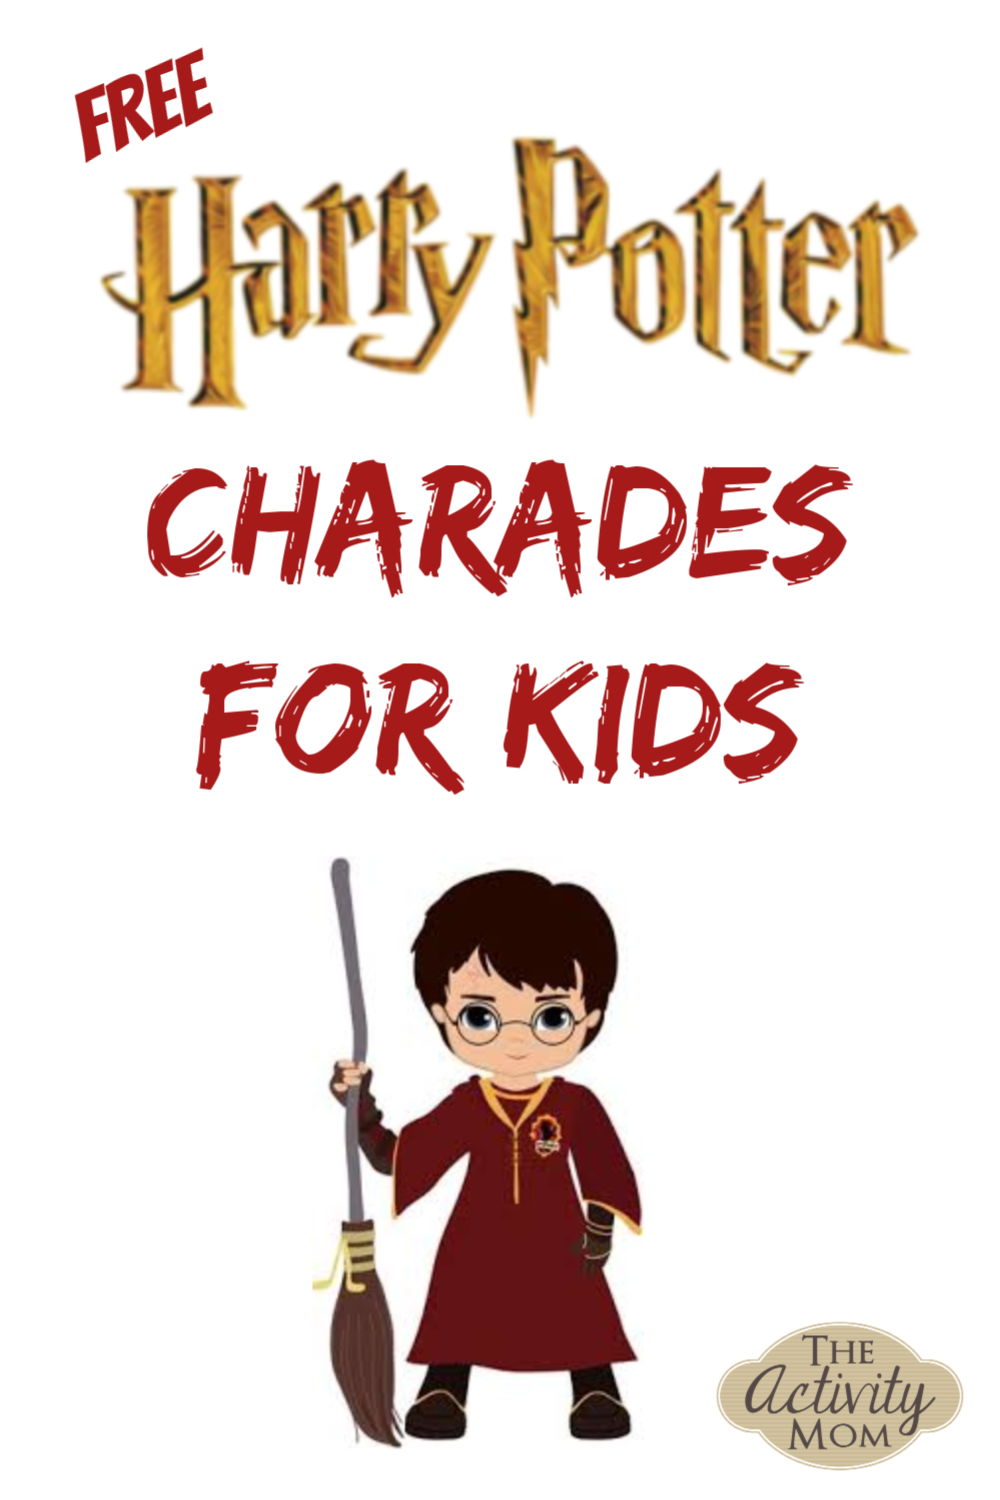 Harry Potter Charades for Kids